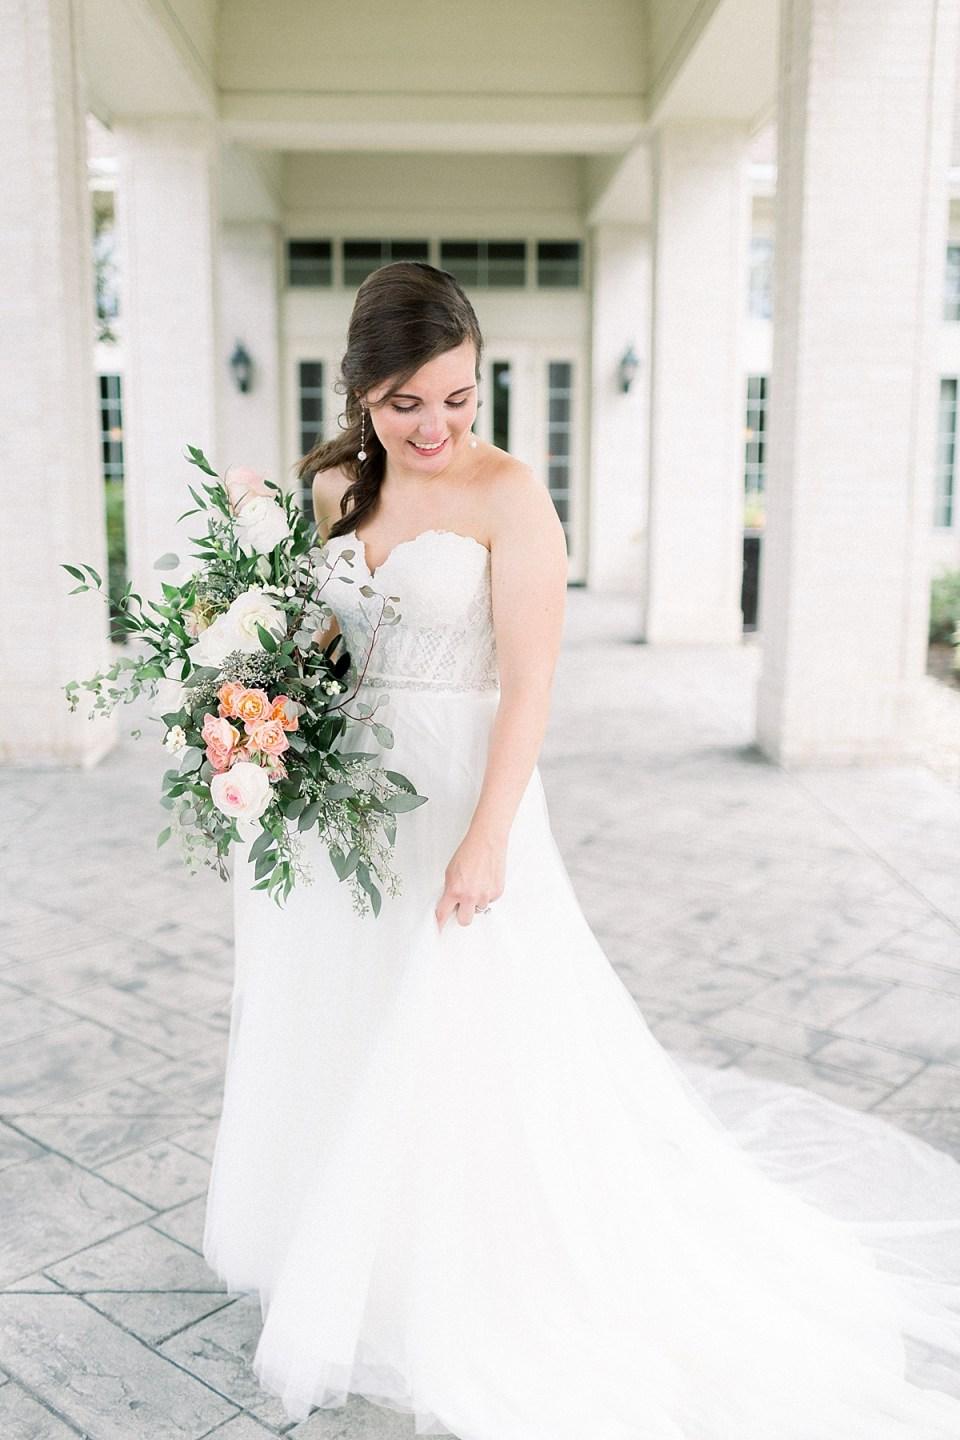 Arielle Peters Photography | Bride dancing in her gown outside at The Bridgewater Club in Carmel, Indiana on wedding day.